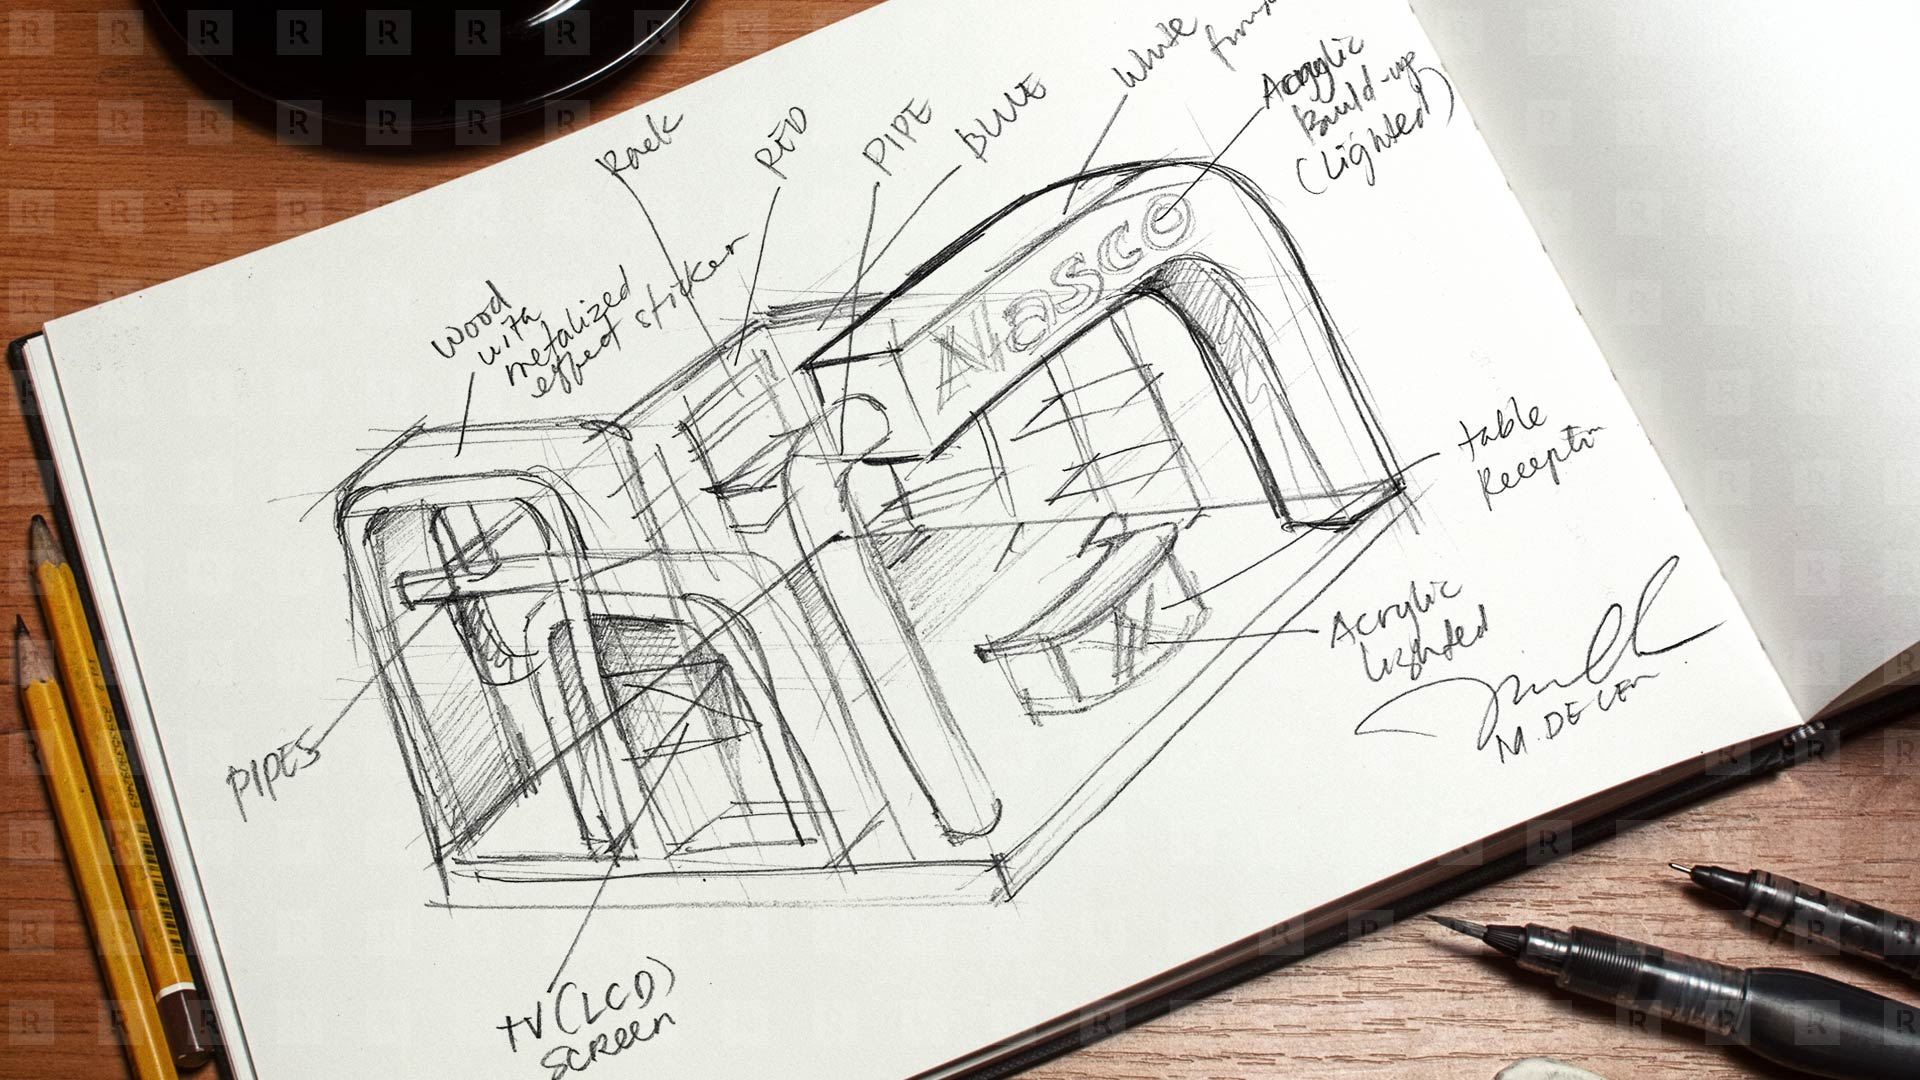 Alasco Booth Design Sketch